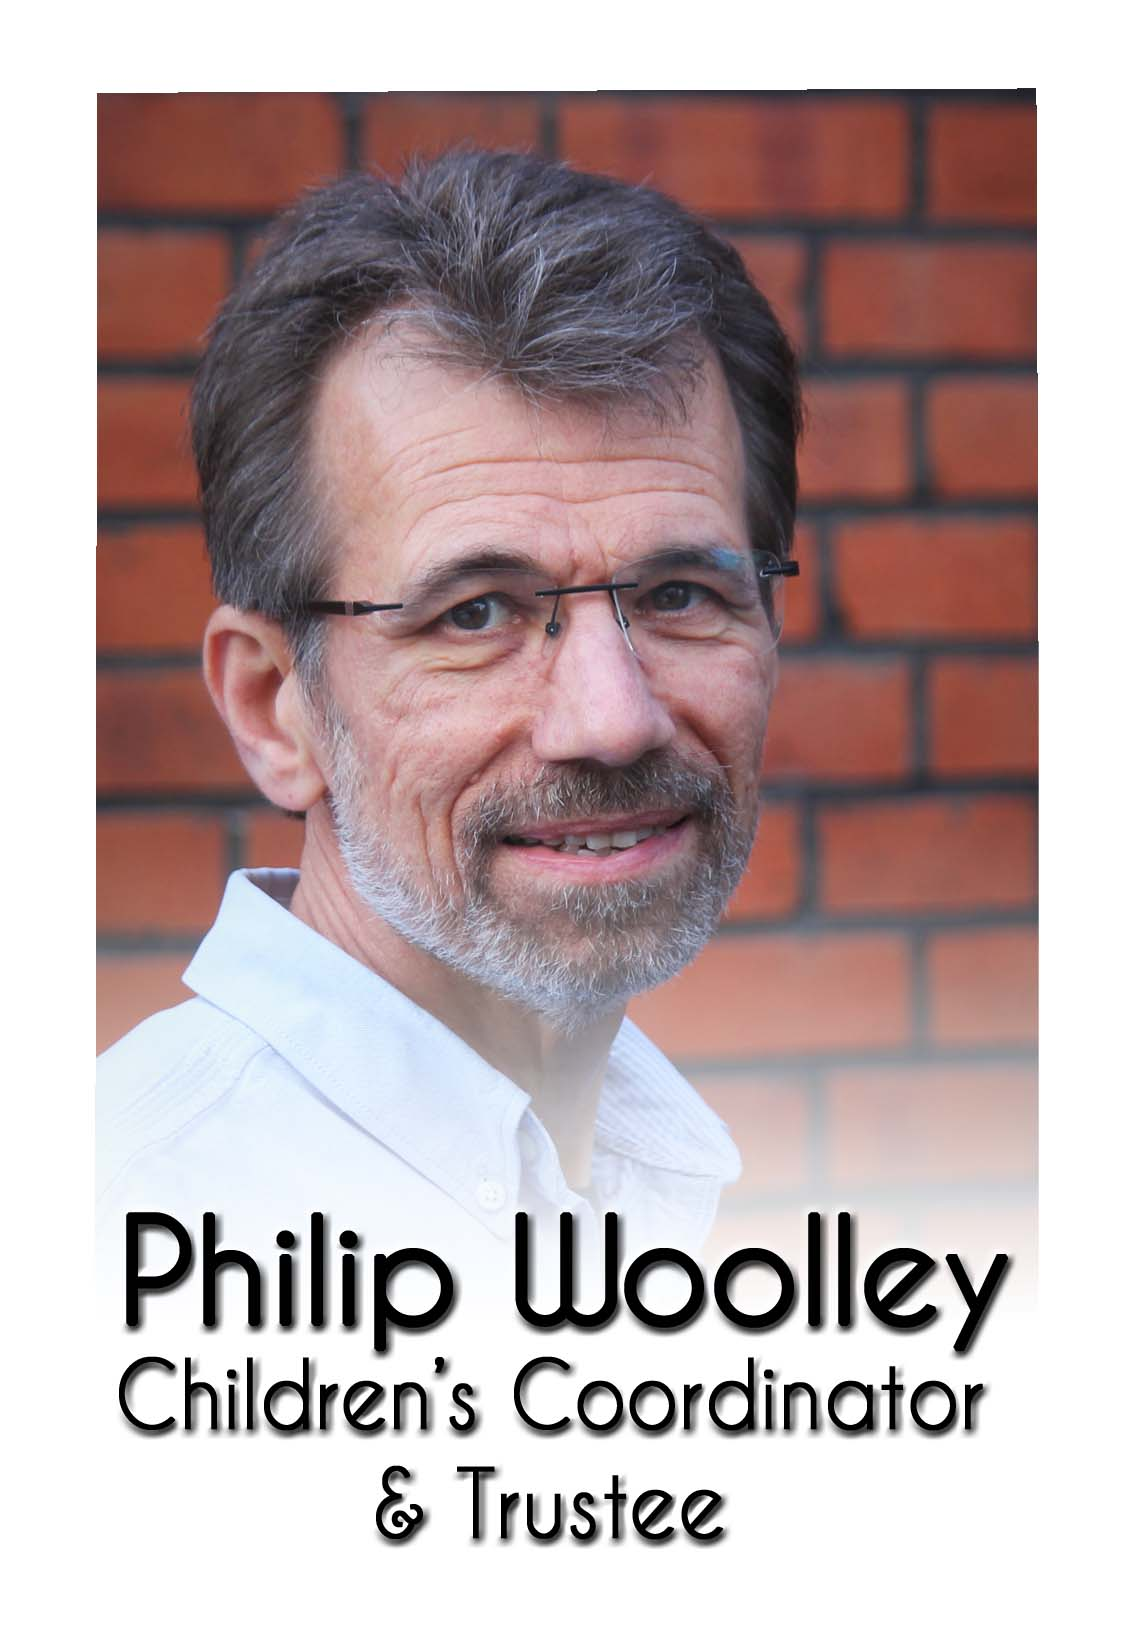 Philip Woolley labelled